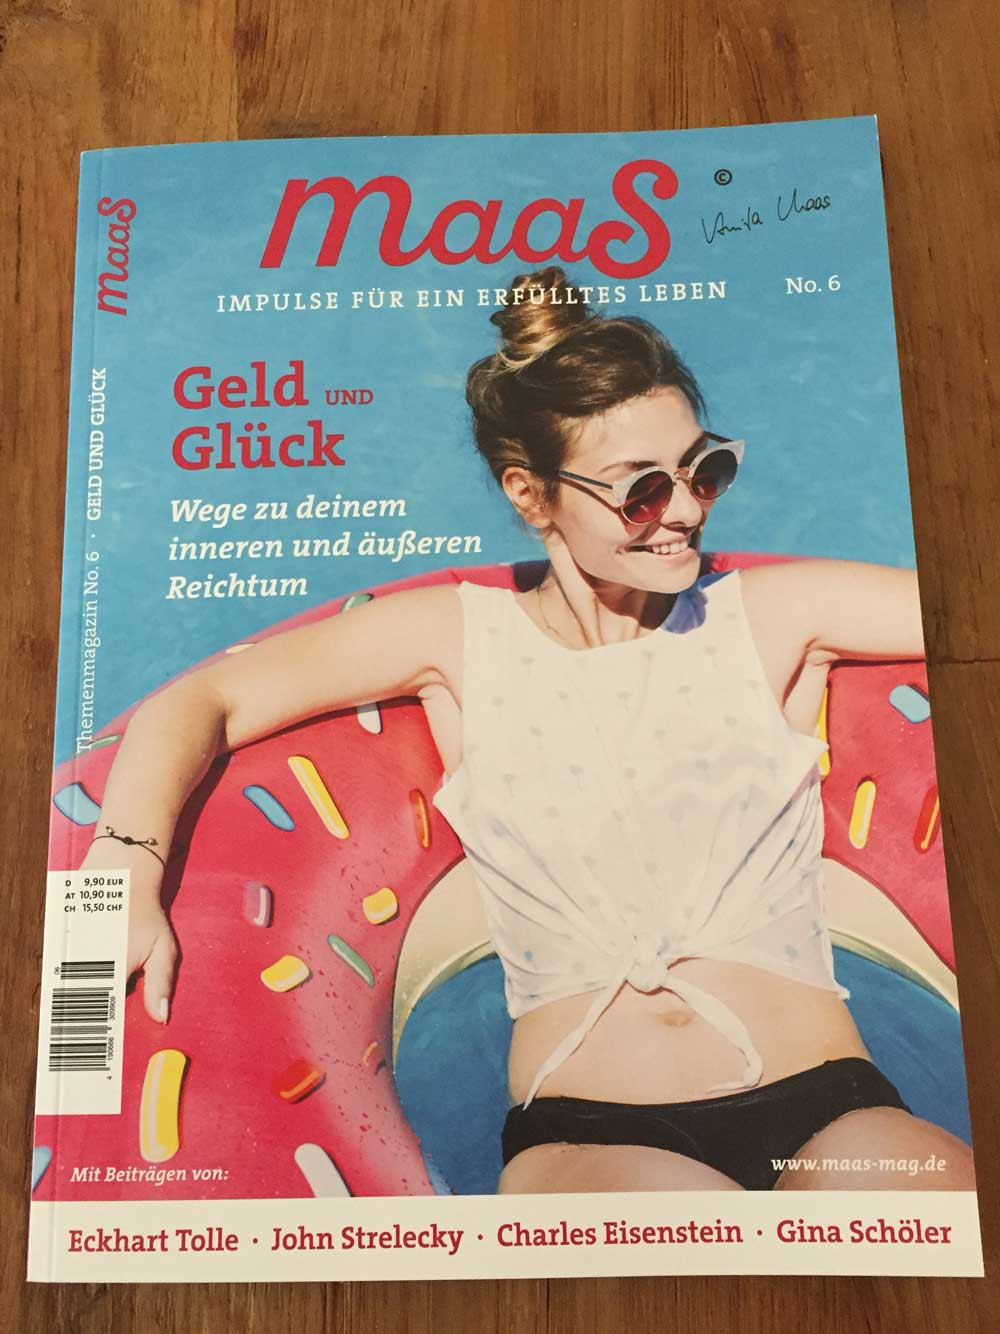 Presseartikel Maas Magazin Business Feng Shui Bettina Kohl